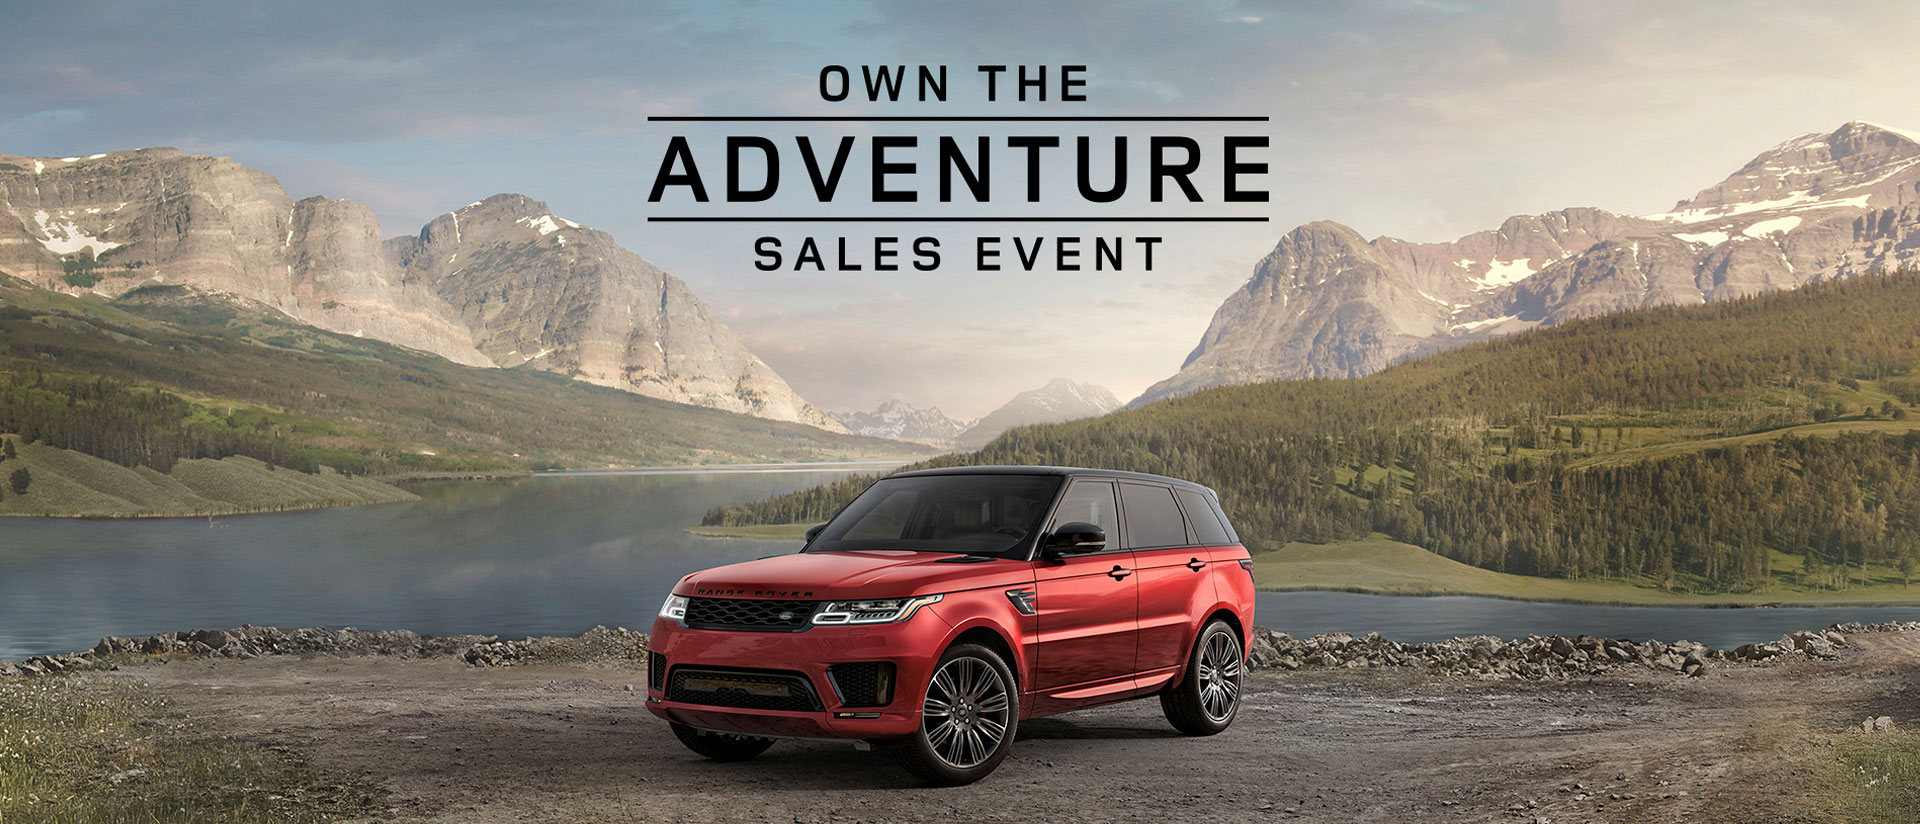 Own The Adventure Slider